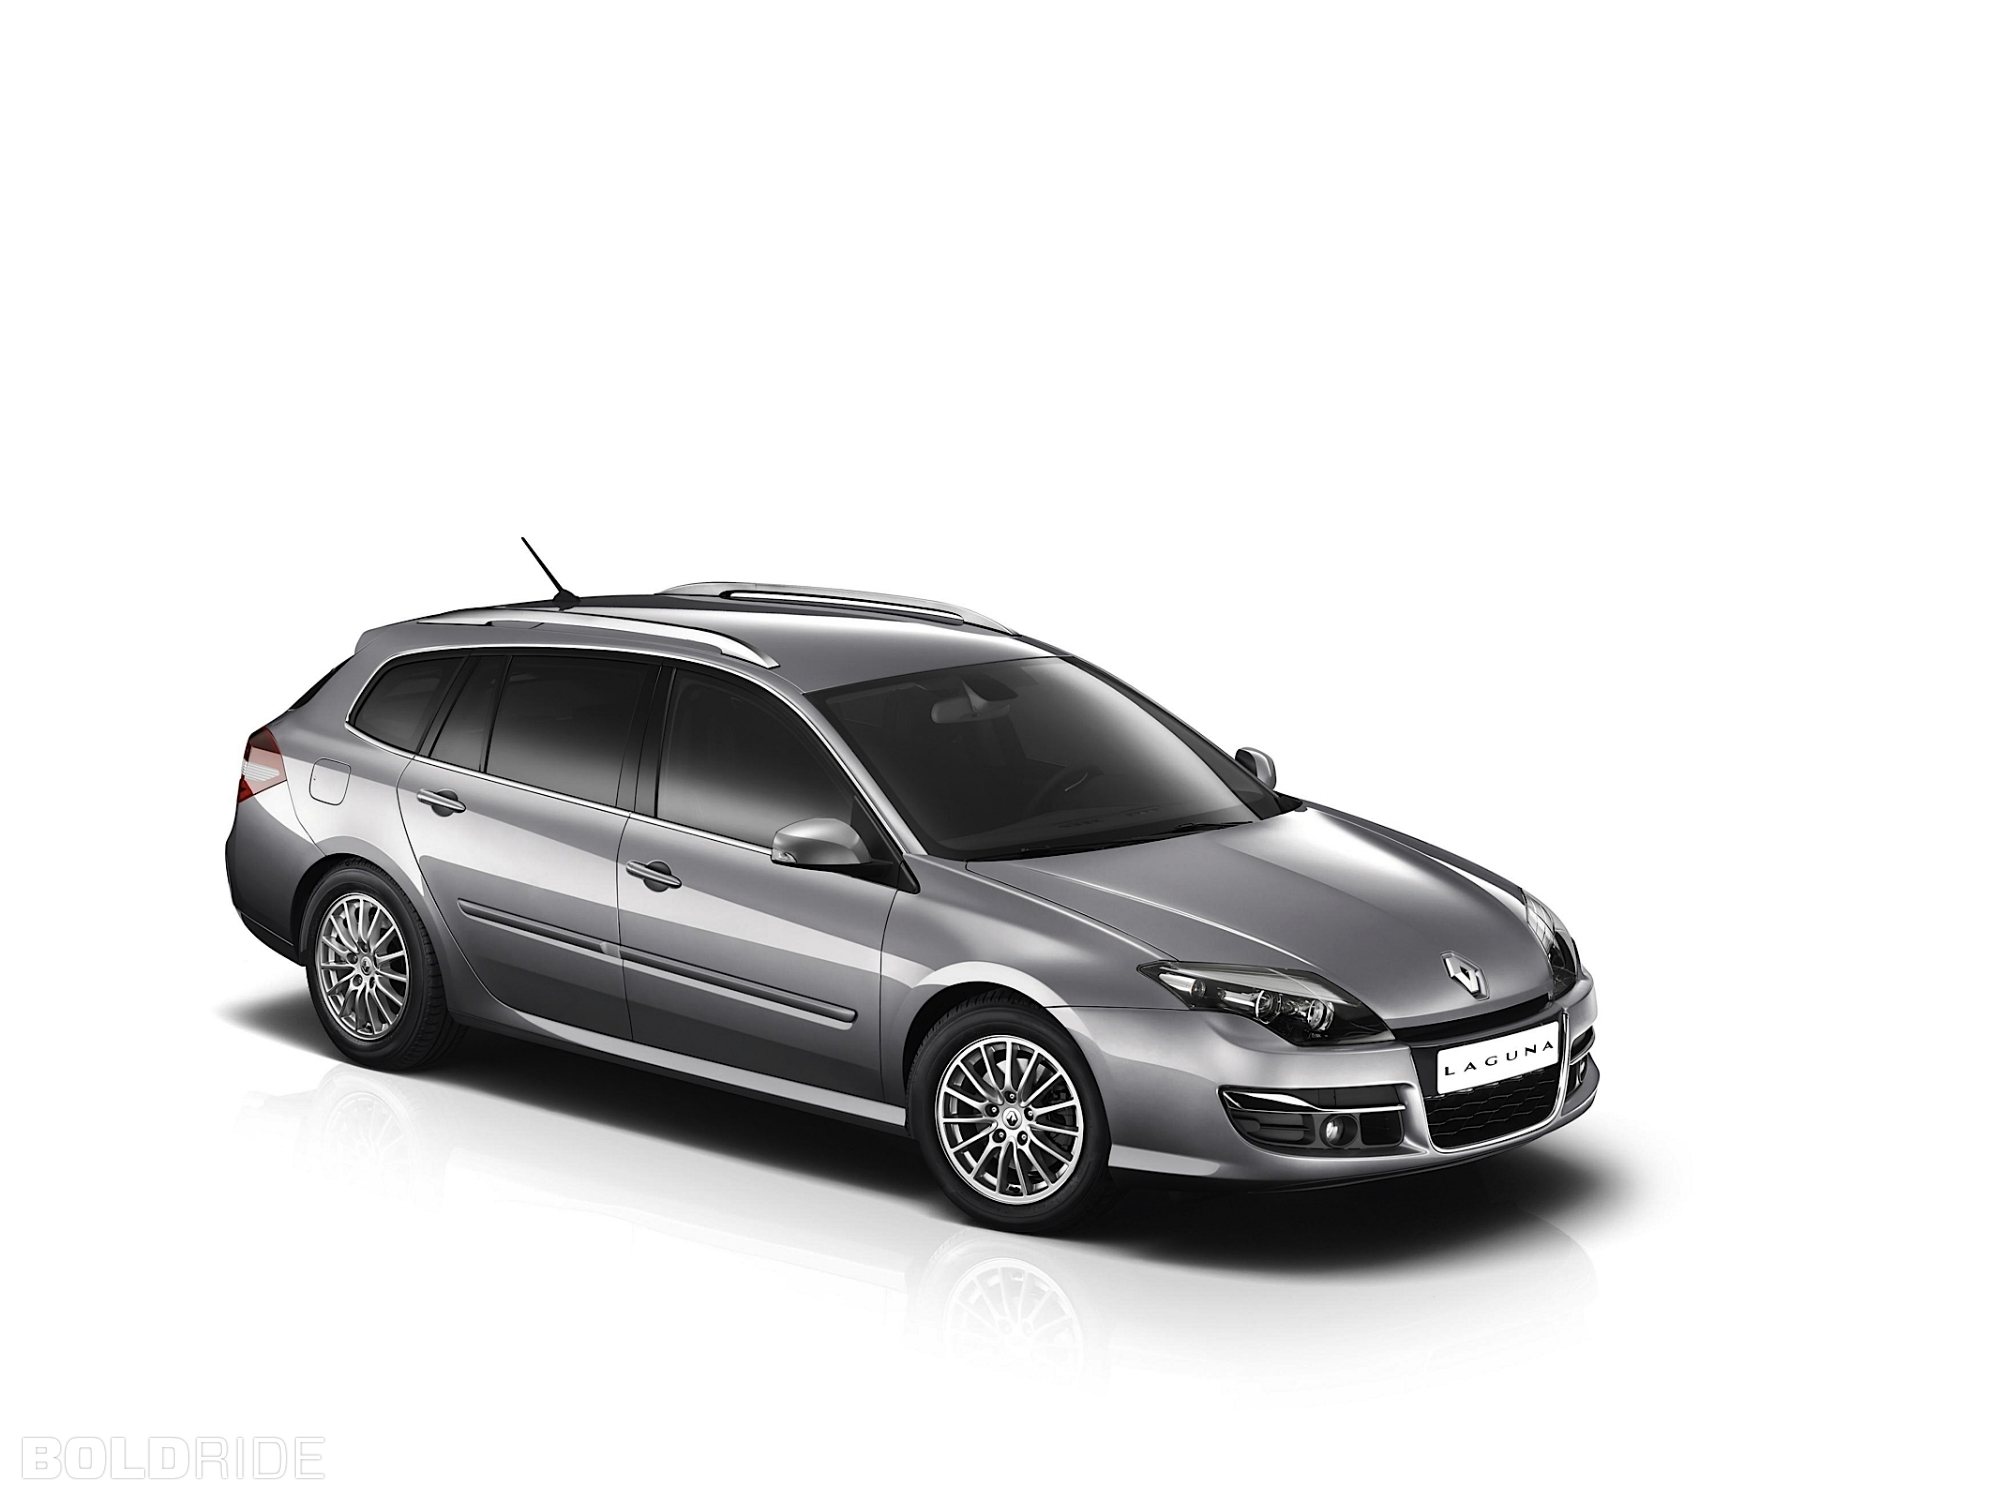 2011 renault laguna estate car photos catalog 2018. Black Bedroom Furniture Sets. Home Design Ideas